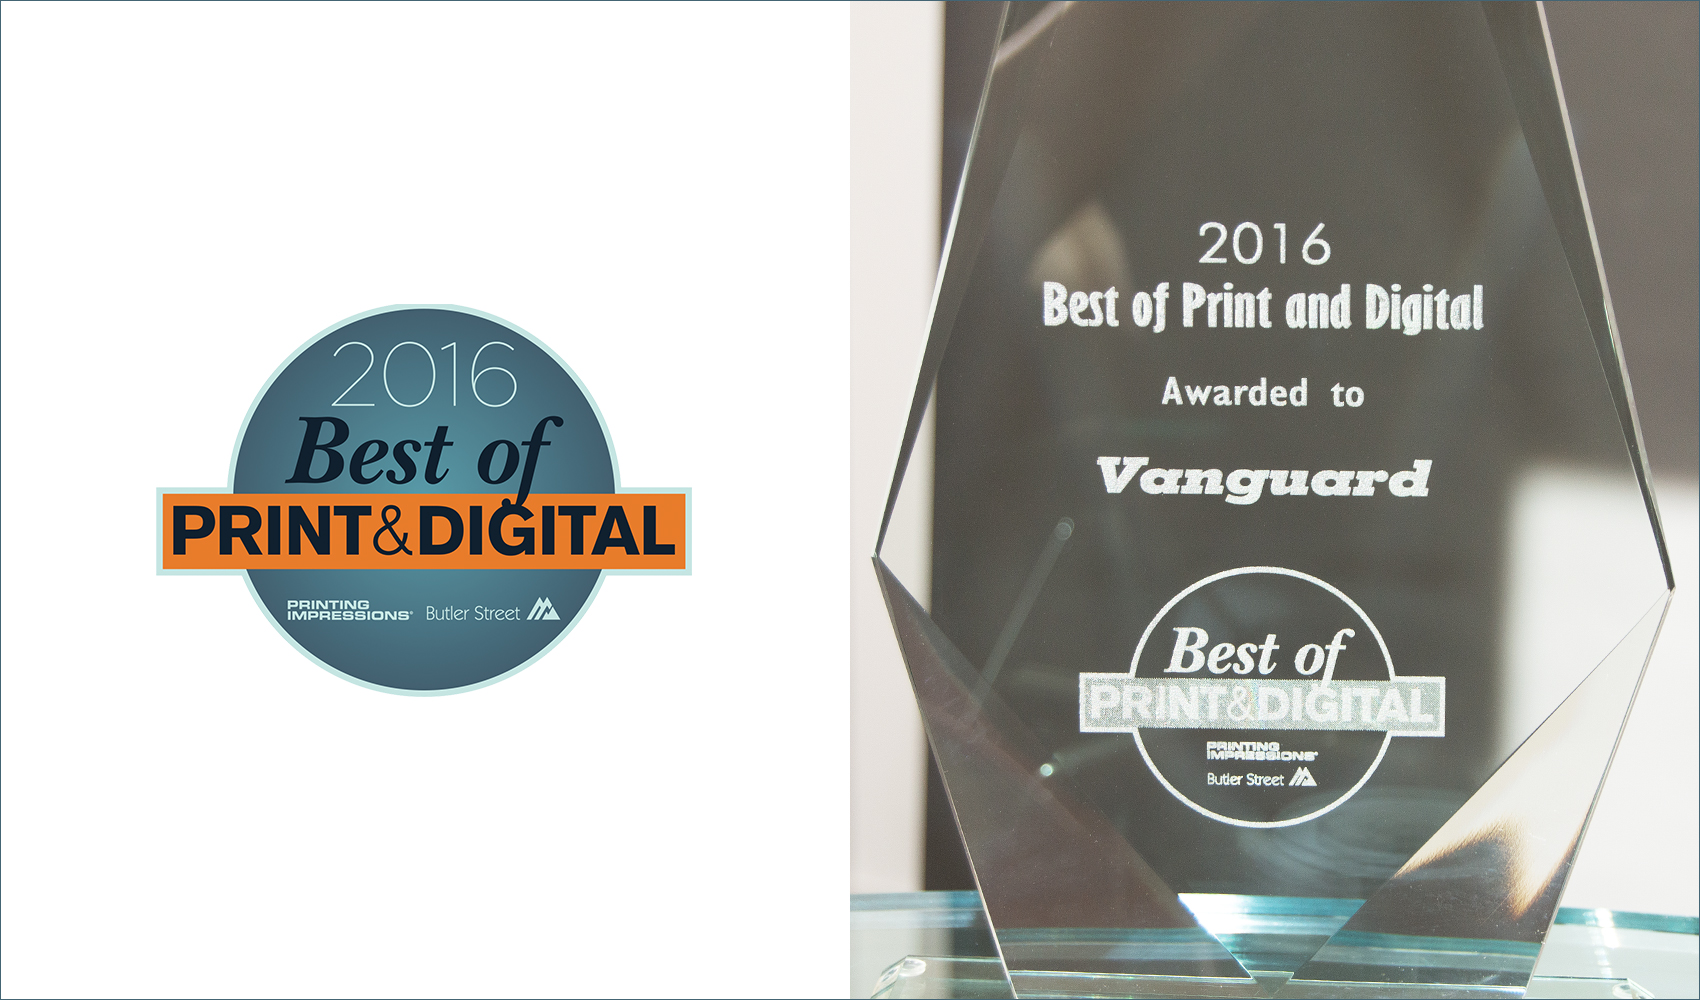 Vanguard - Best of Print and Digital Award